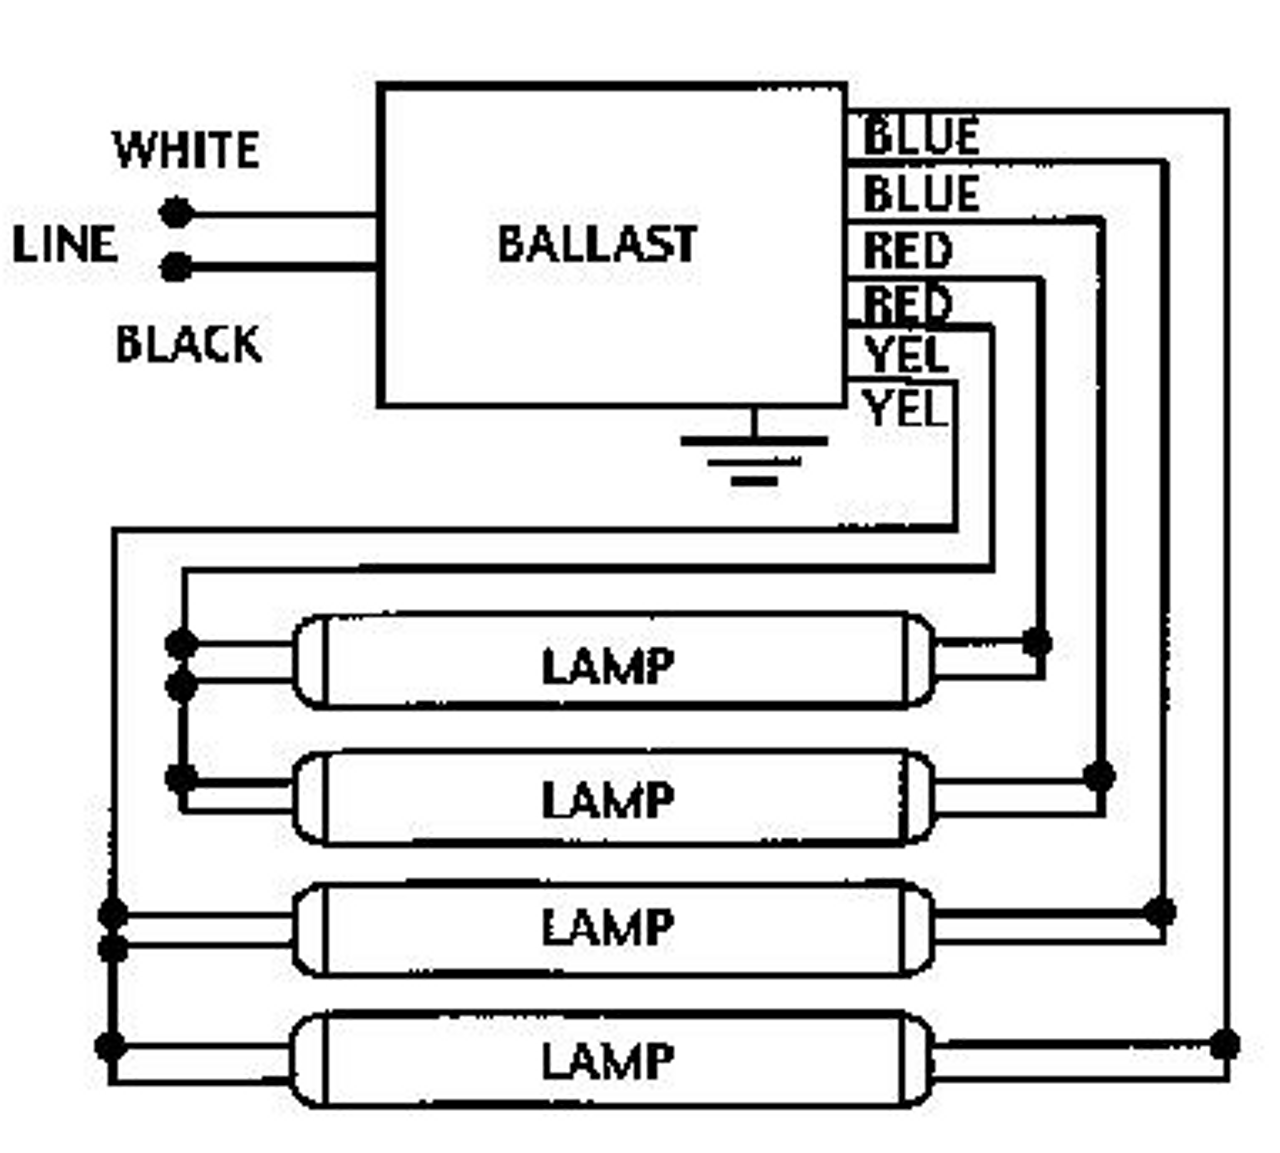 small resolution of  ge432 max g n 74463 ge electronic t8 ballast on t5 electronic ballast t5 ge f40t12 ballast wiring diagram